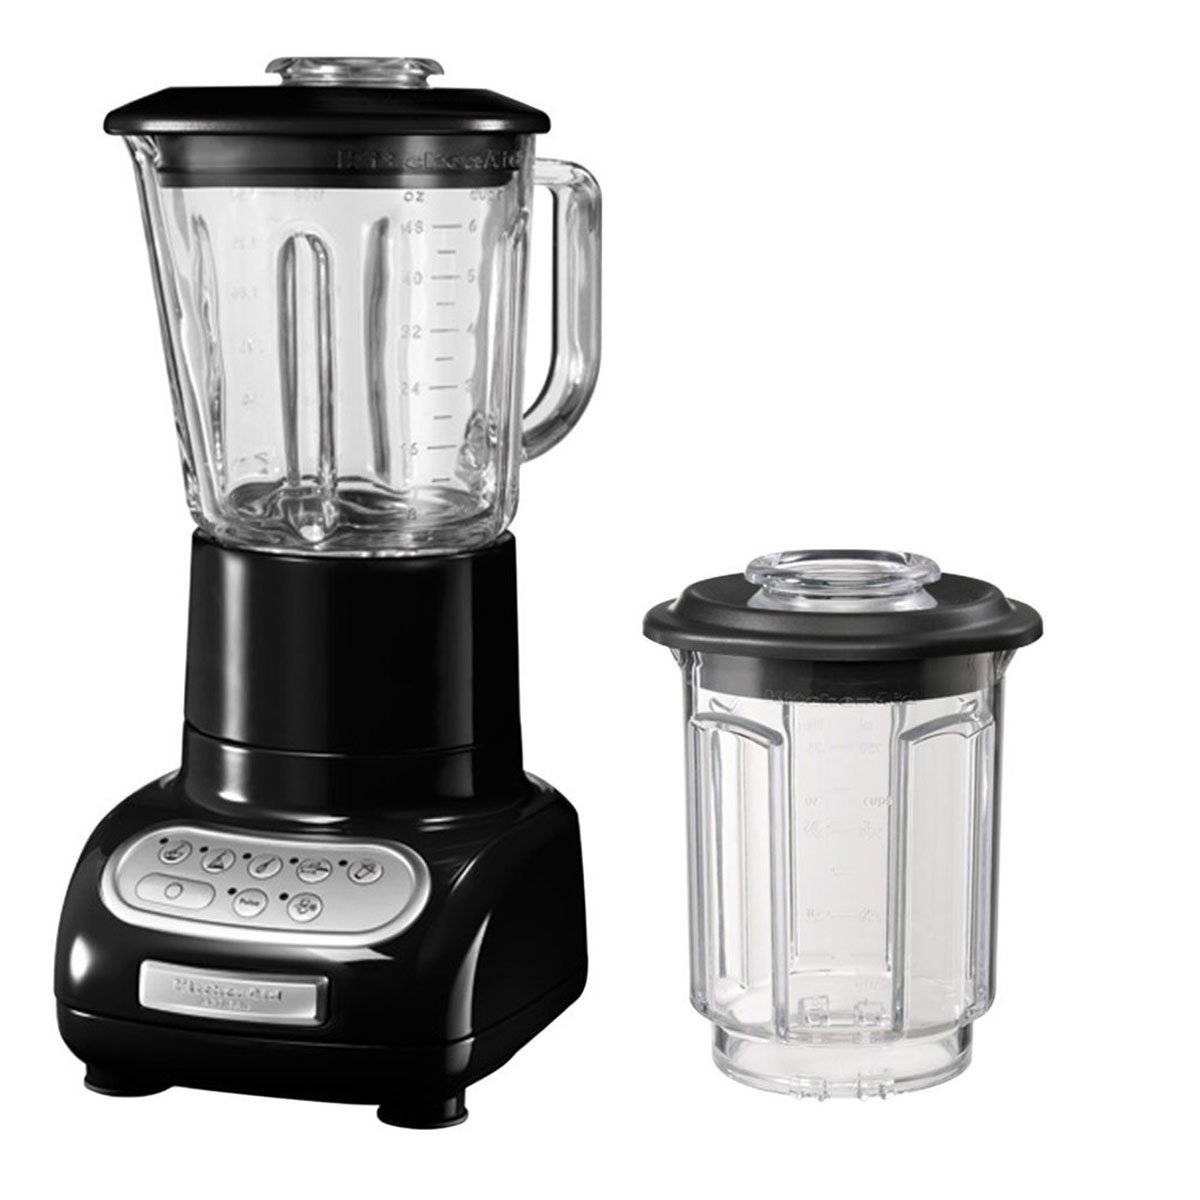 Amazon.de: Kitchenaid 5KSB5553EOB Standermixer schwarz